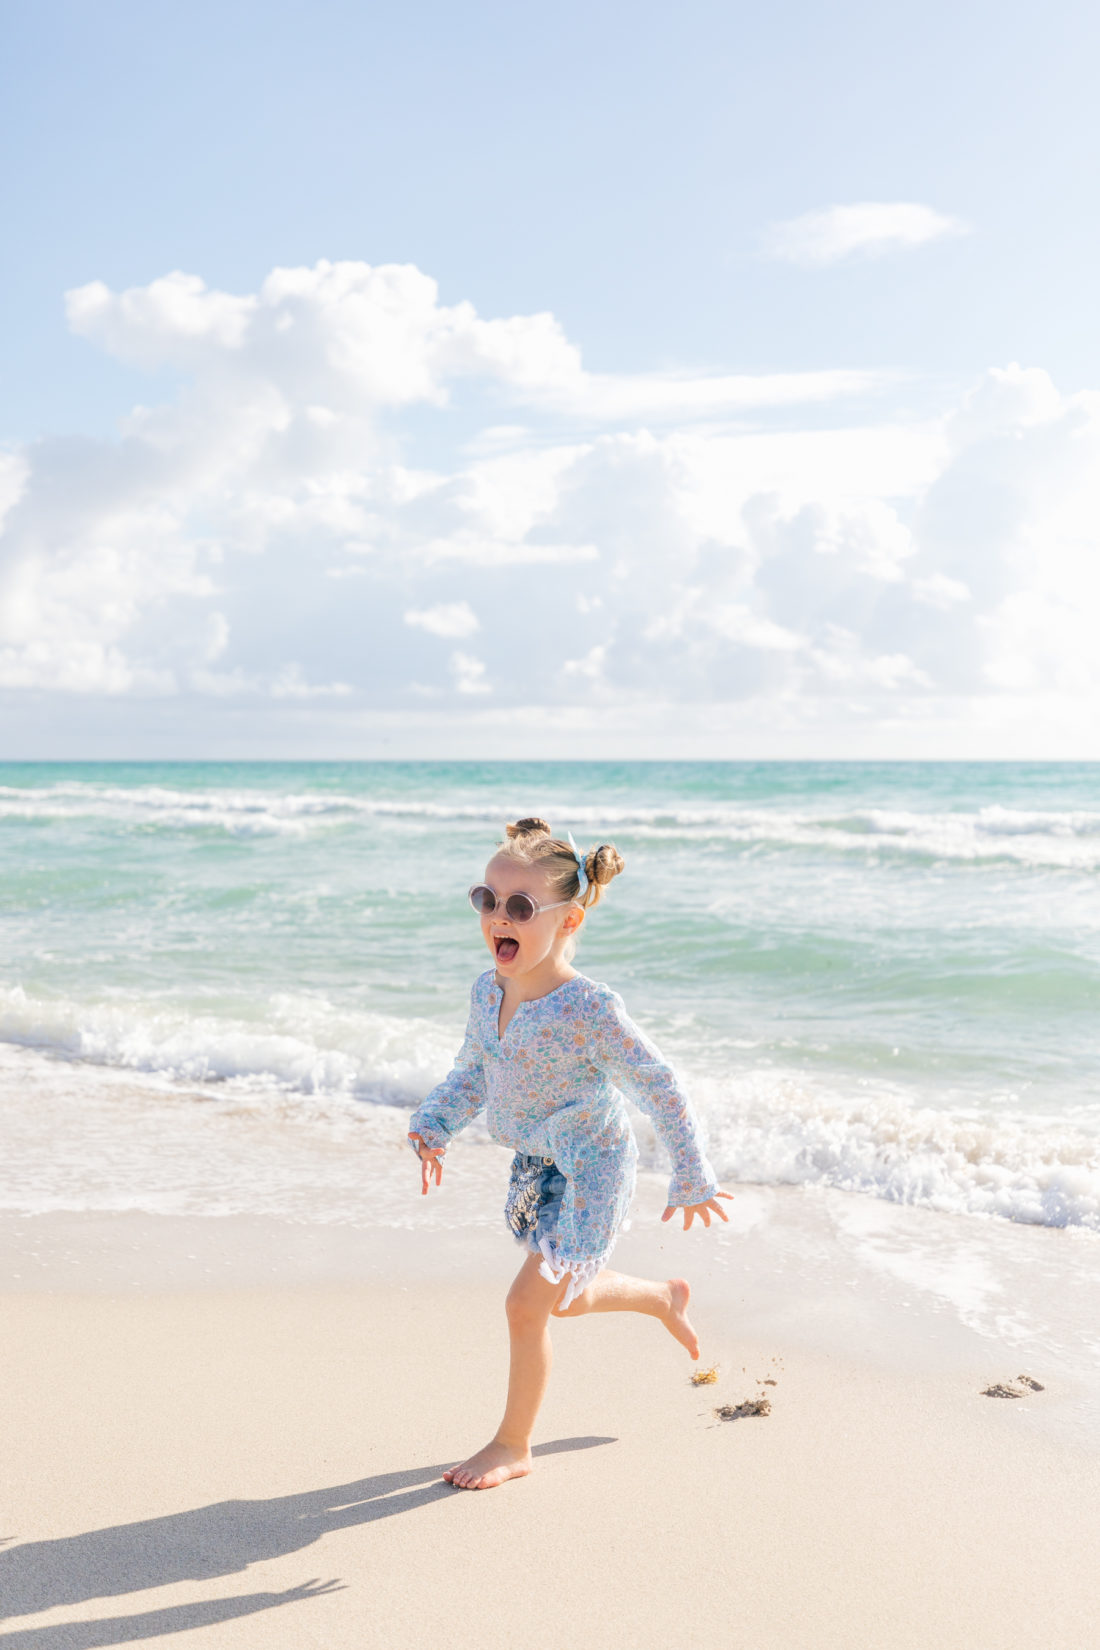 Marlowe Martino wears a blue, floral tunic from the Happily Eva After x Masala Baby capsule collection, and denim shorts, and frolics in the sand and surf beachside in Miami